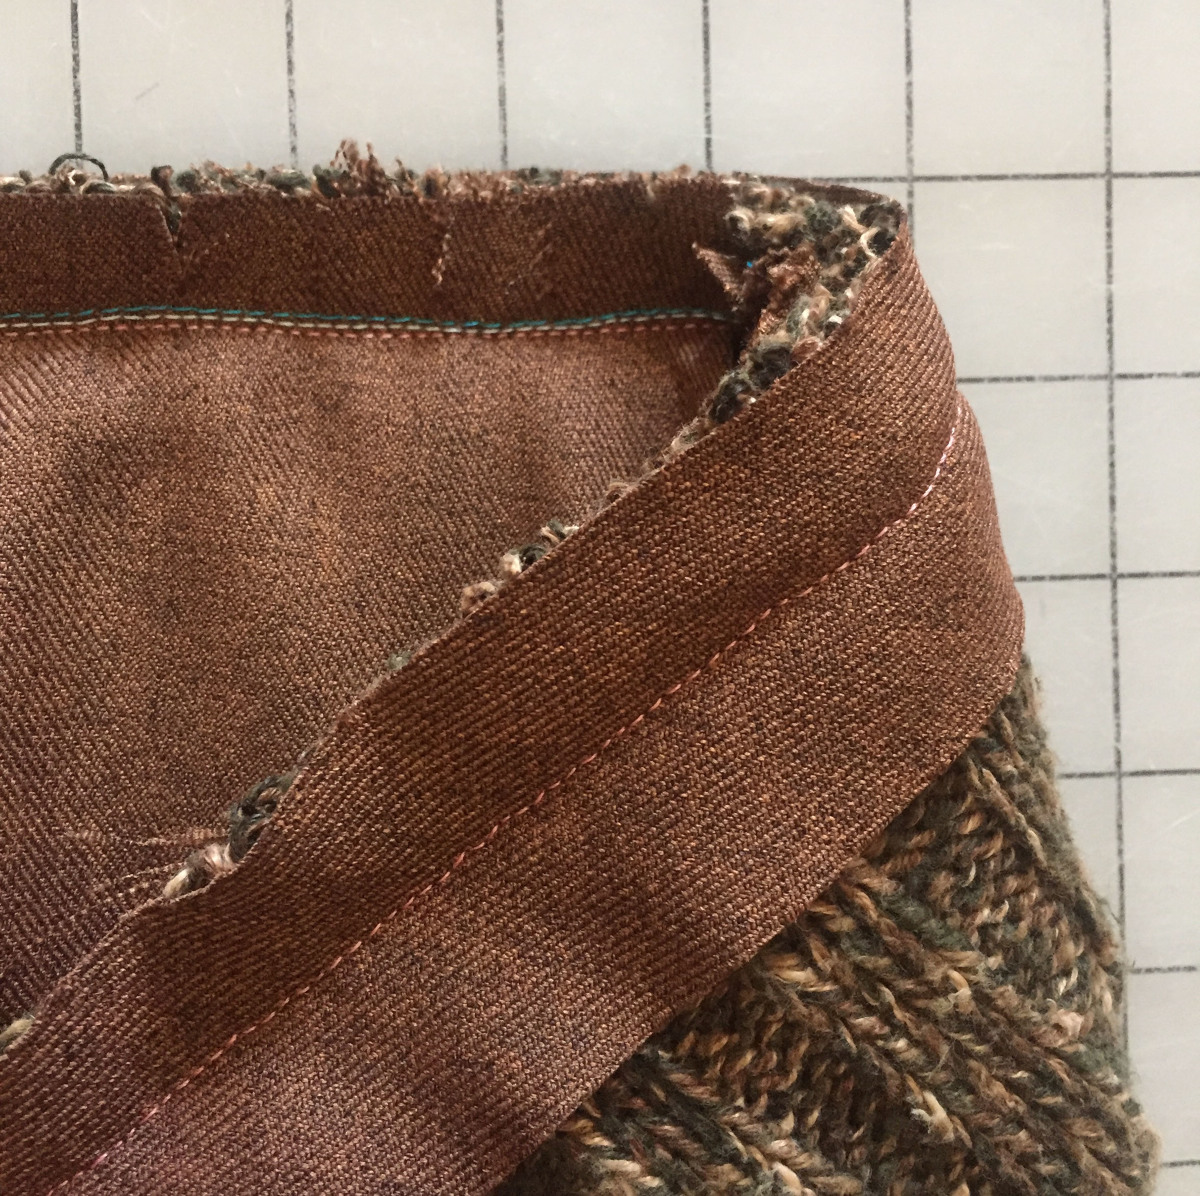 Sew the bias strip to the collar and neckline